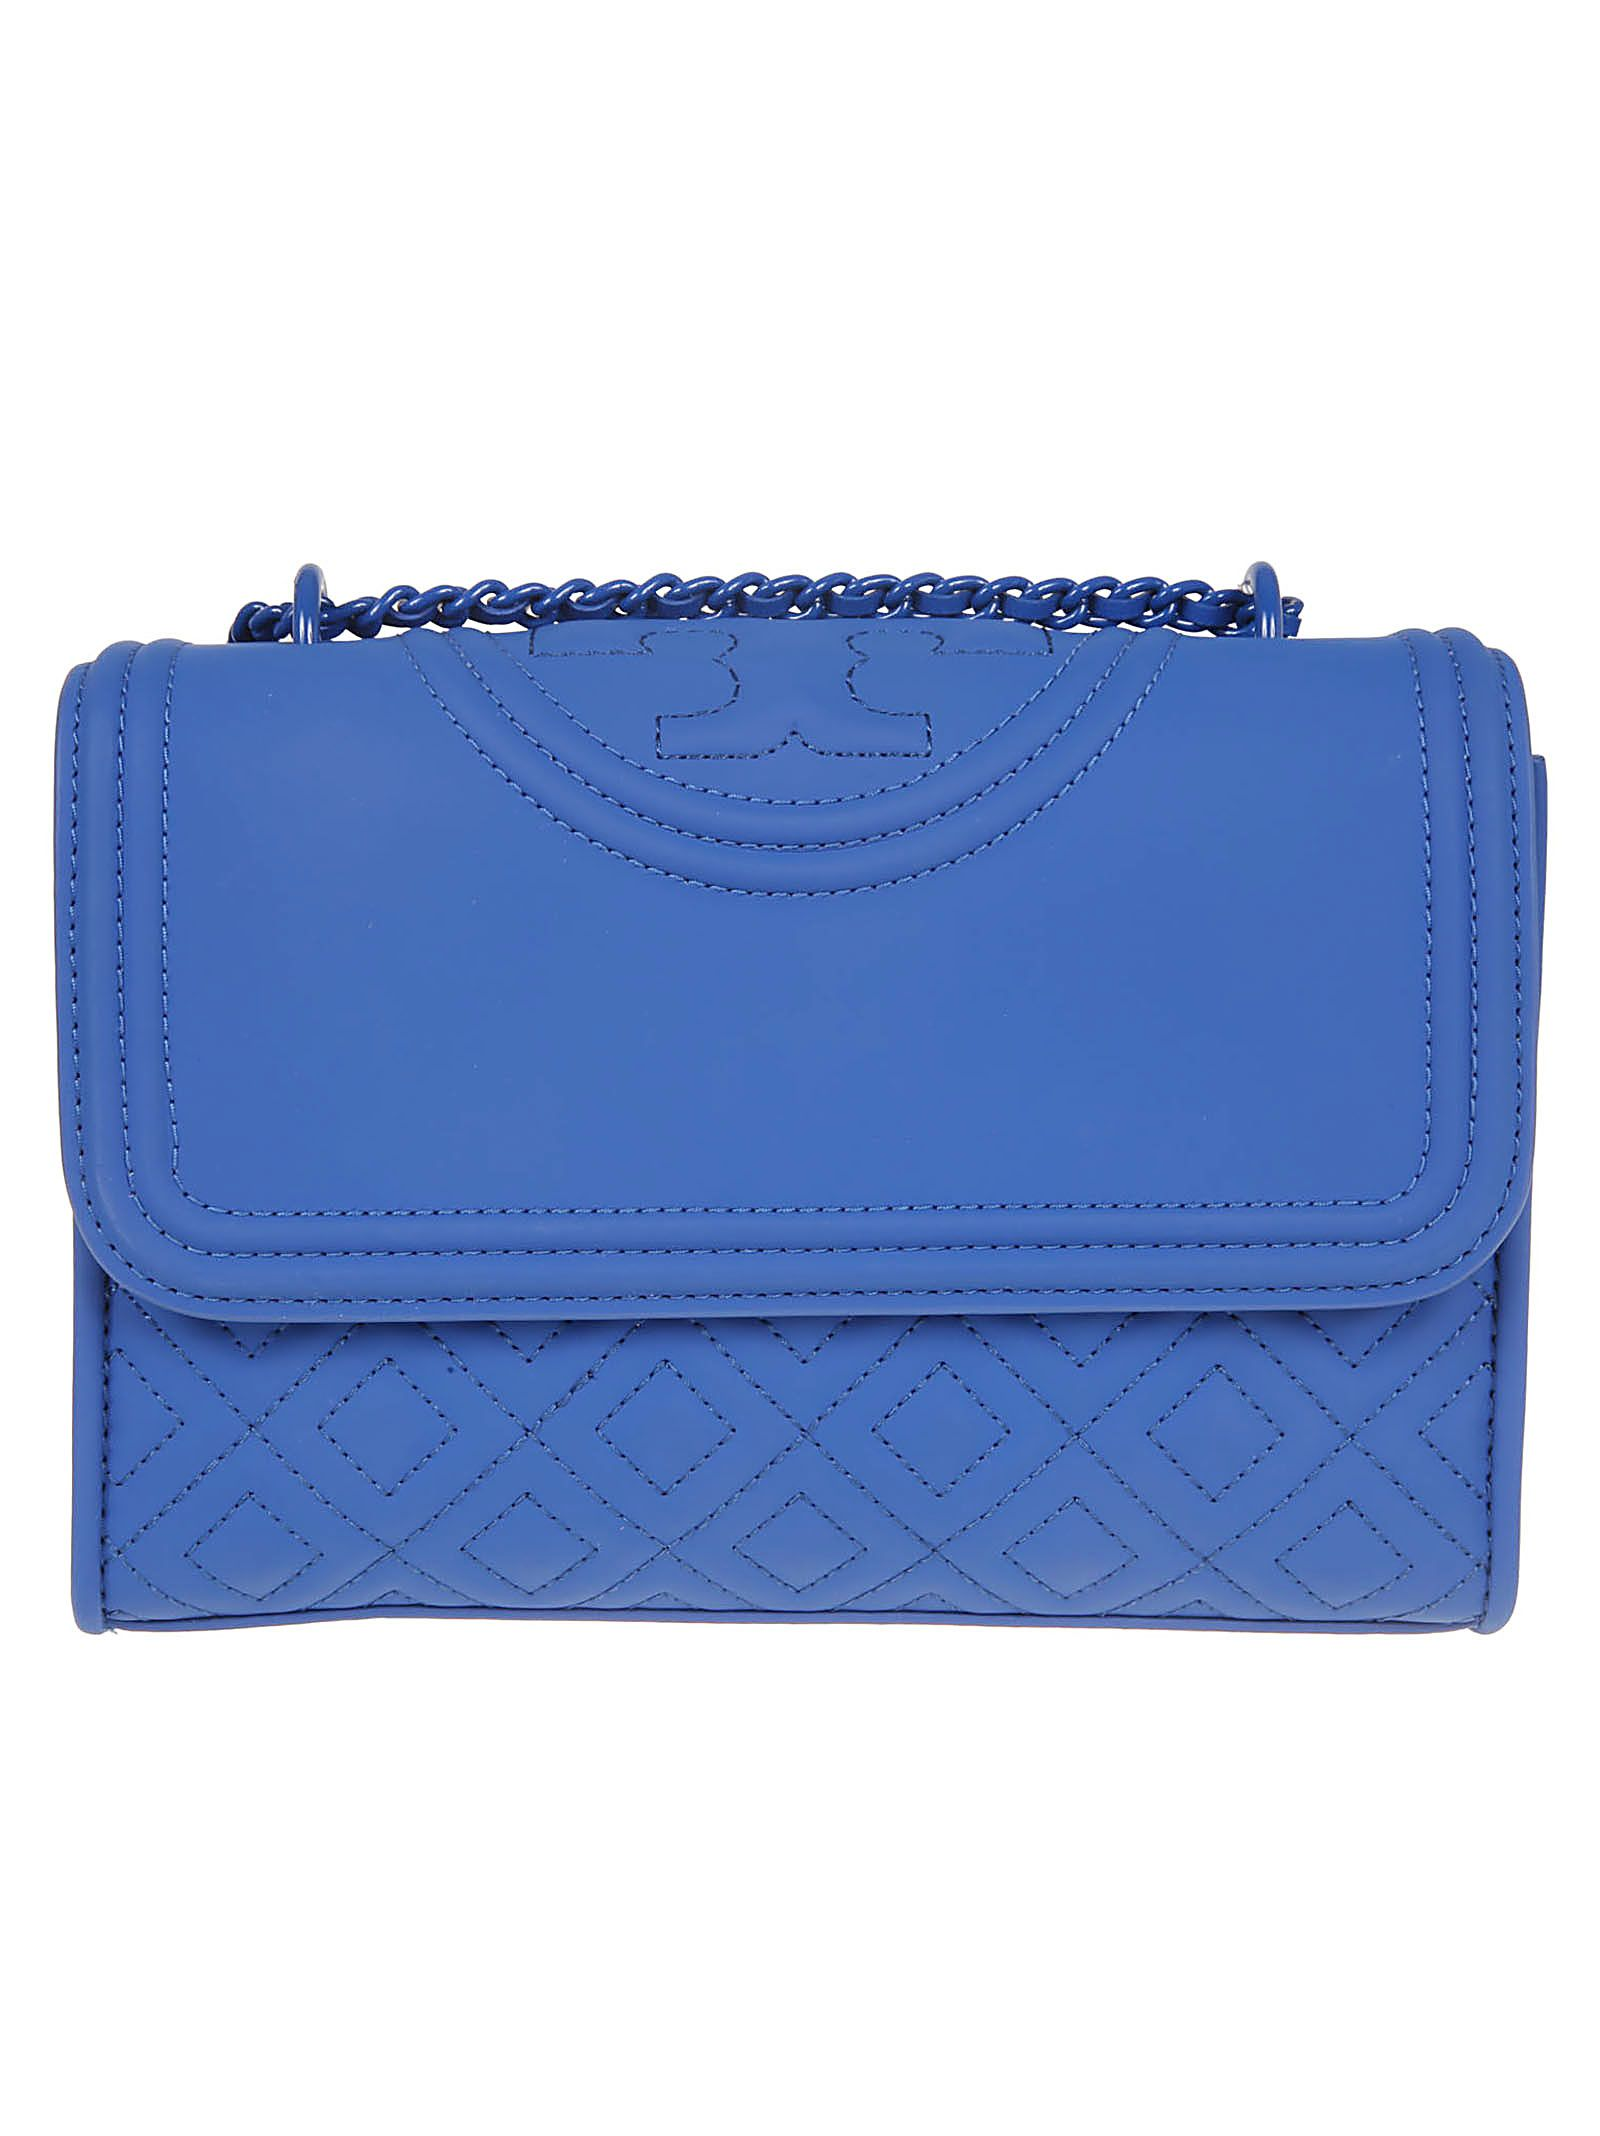 4119a958e9c7 Tory Burch Fleming Matte Small Convertible Shoulder Bag - Mediterranean  Blue ...